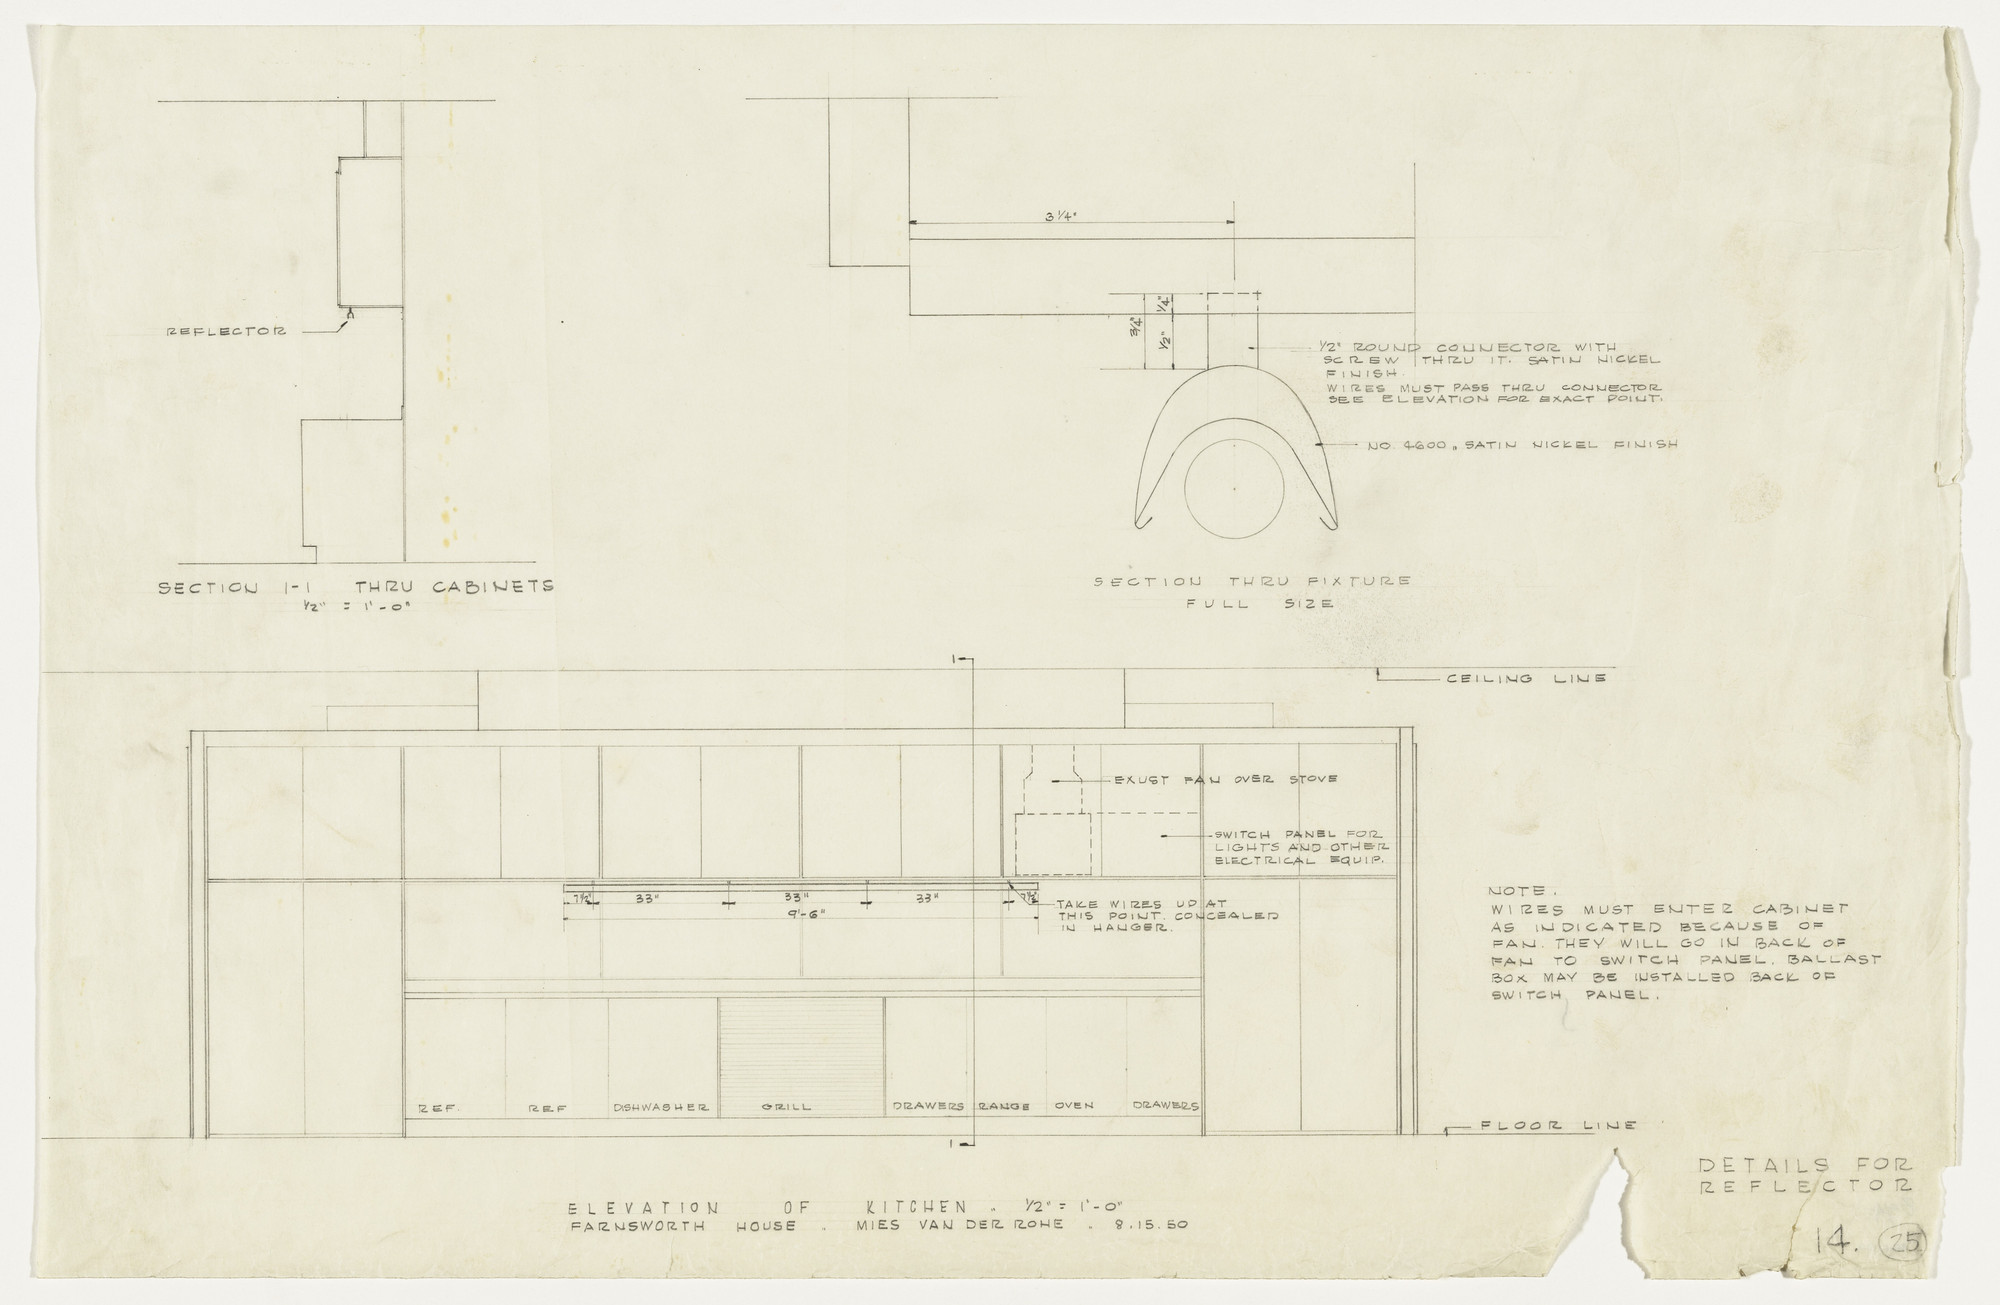 Ludwig Mies Van Der Rohe Farnsworth House Plano Illinois Elevation Of Kitchen And Sections 1950 Moma